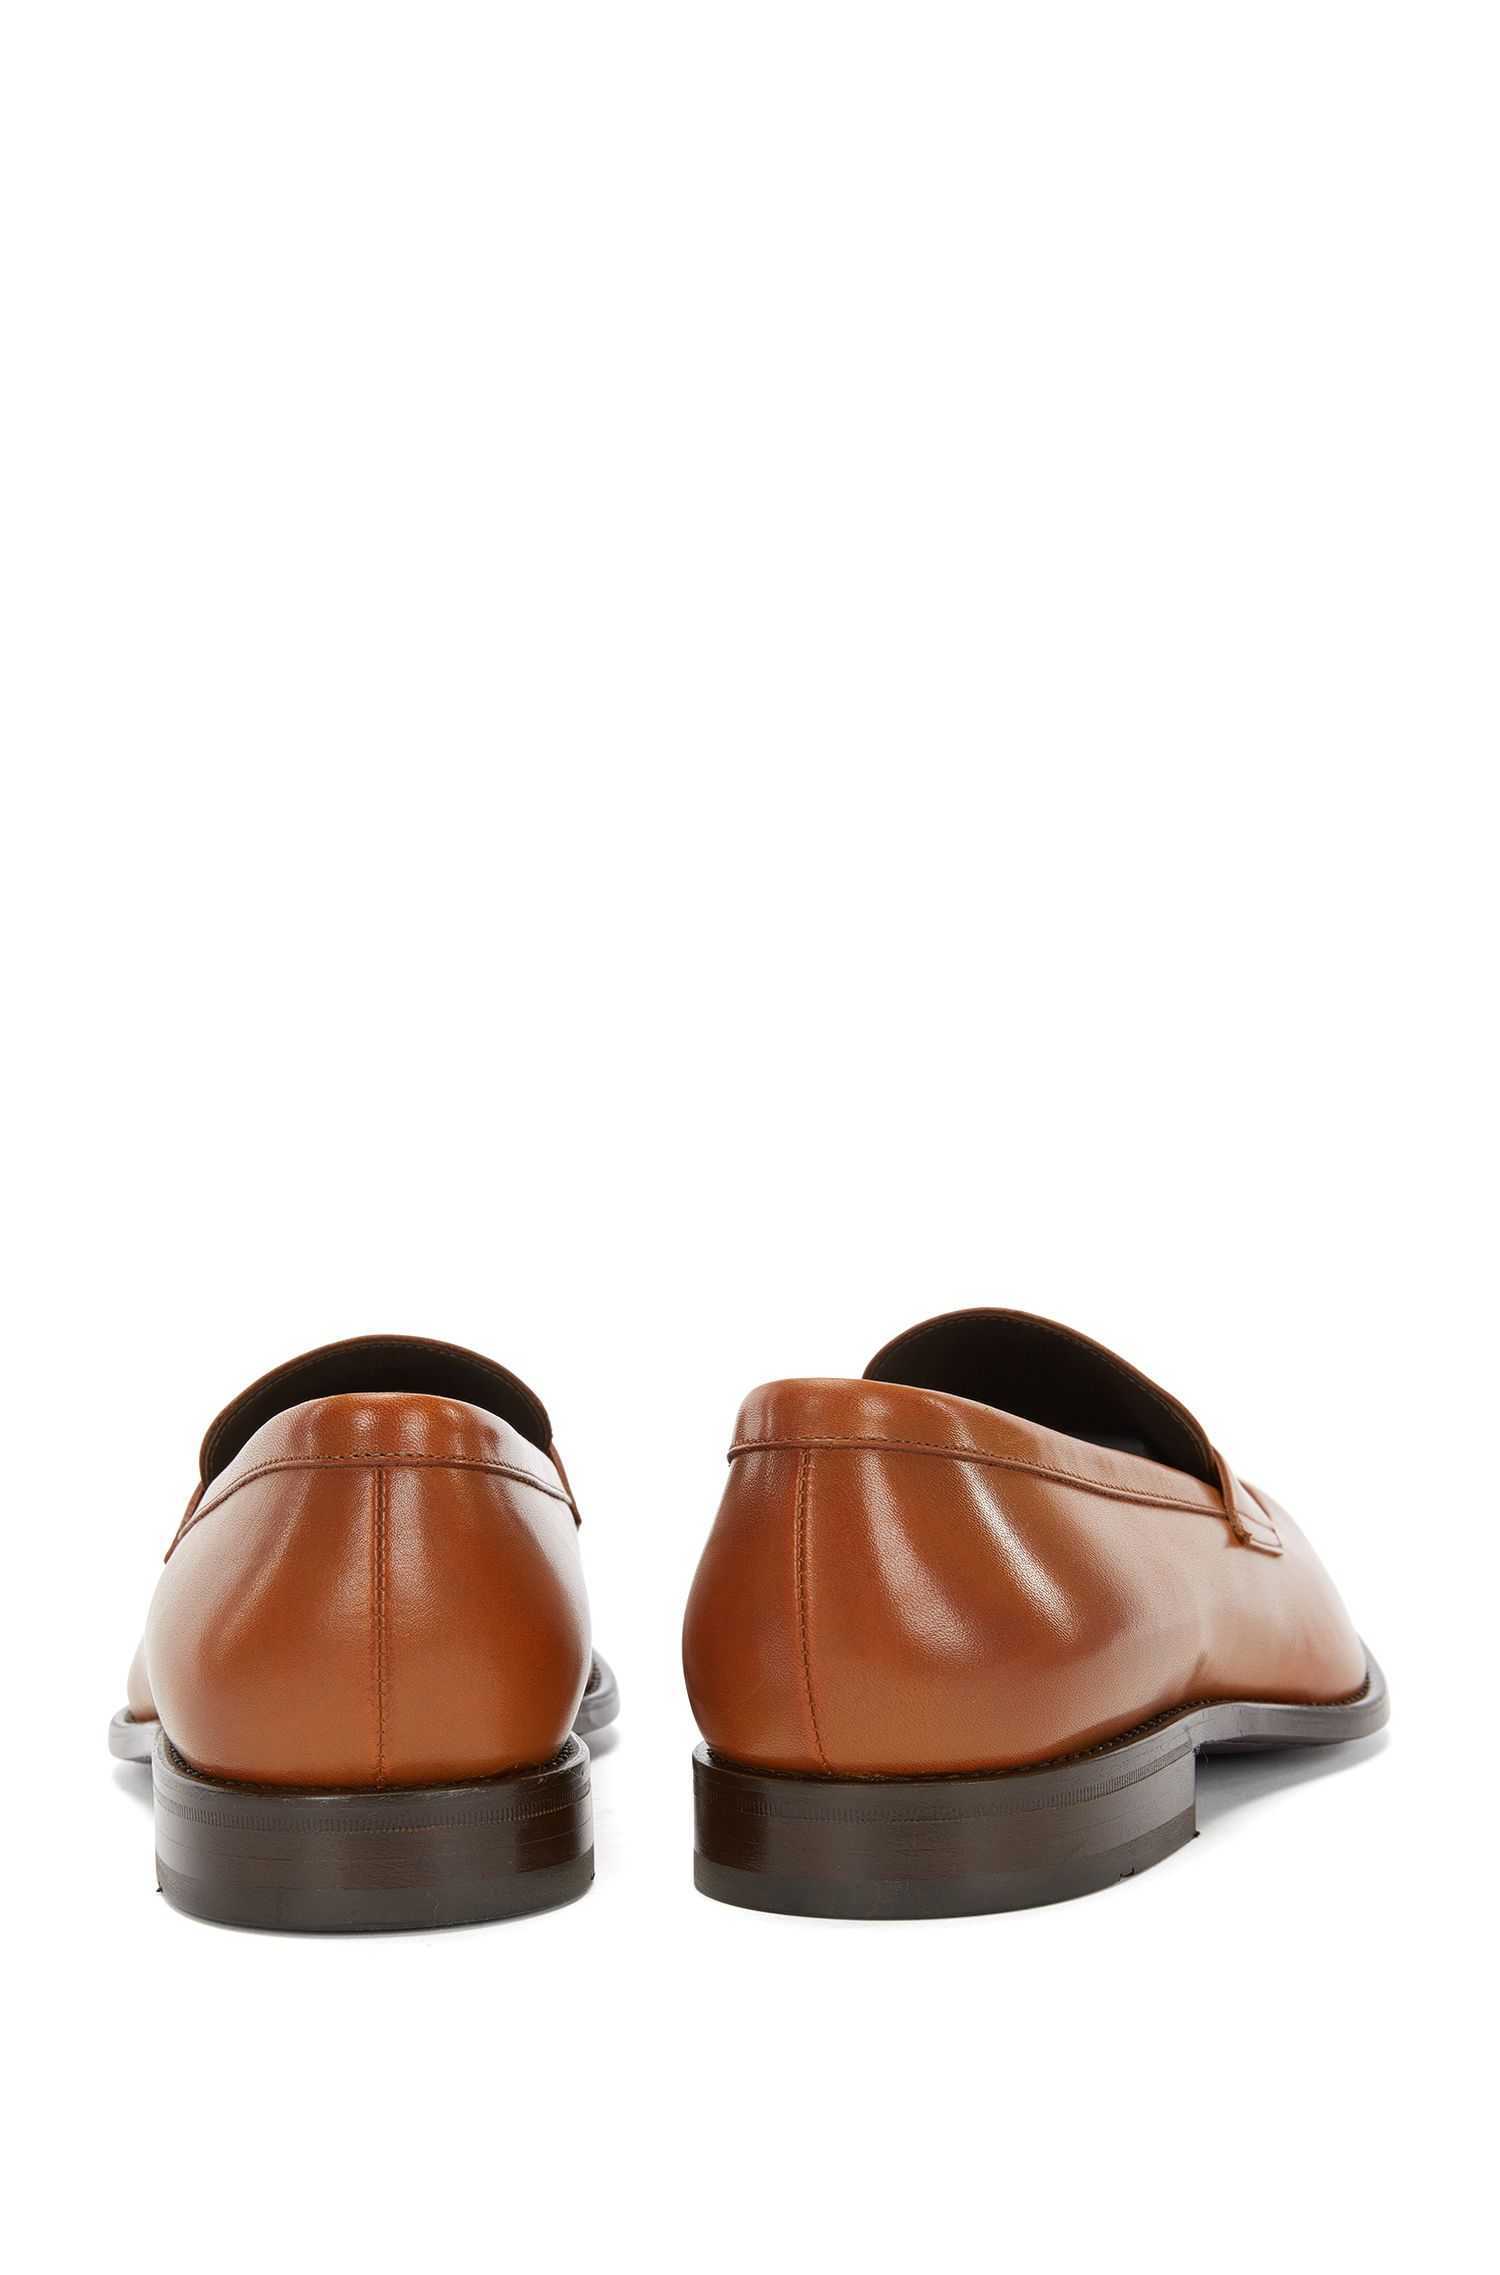 Italian Leather Penny Loafer Dress Shoe | Stockholm Loaf Apst